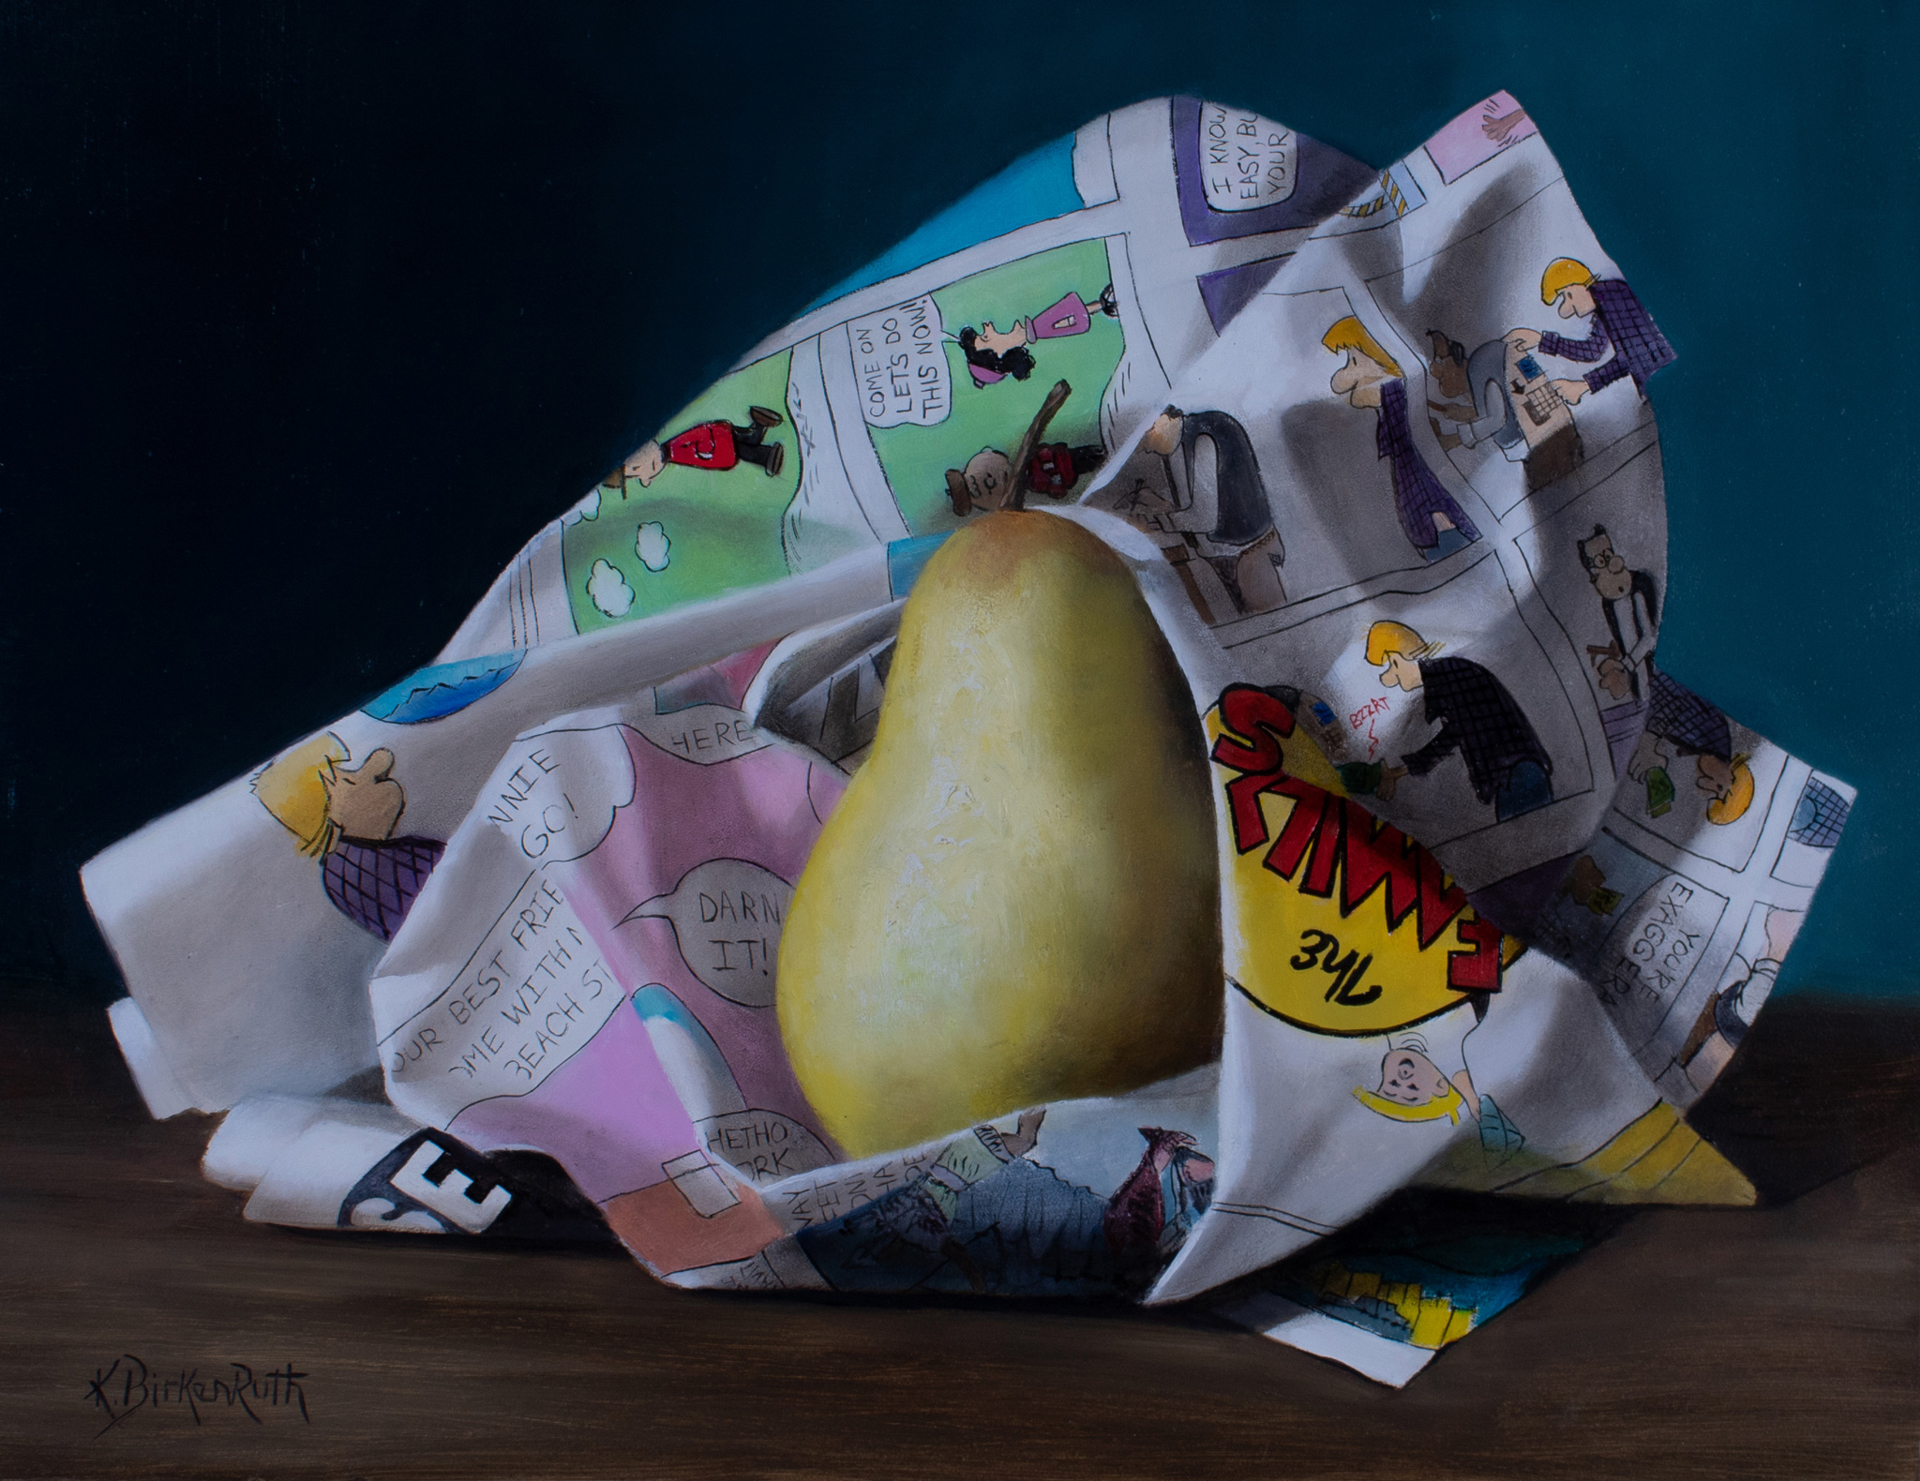 Covered in Comics by Kelly Birkenruth